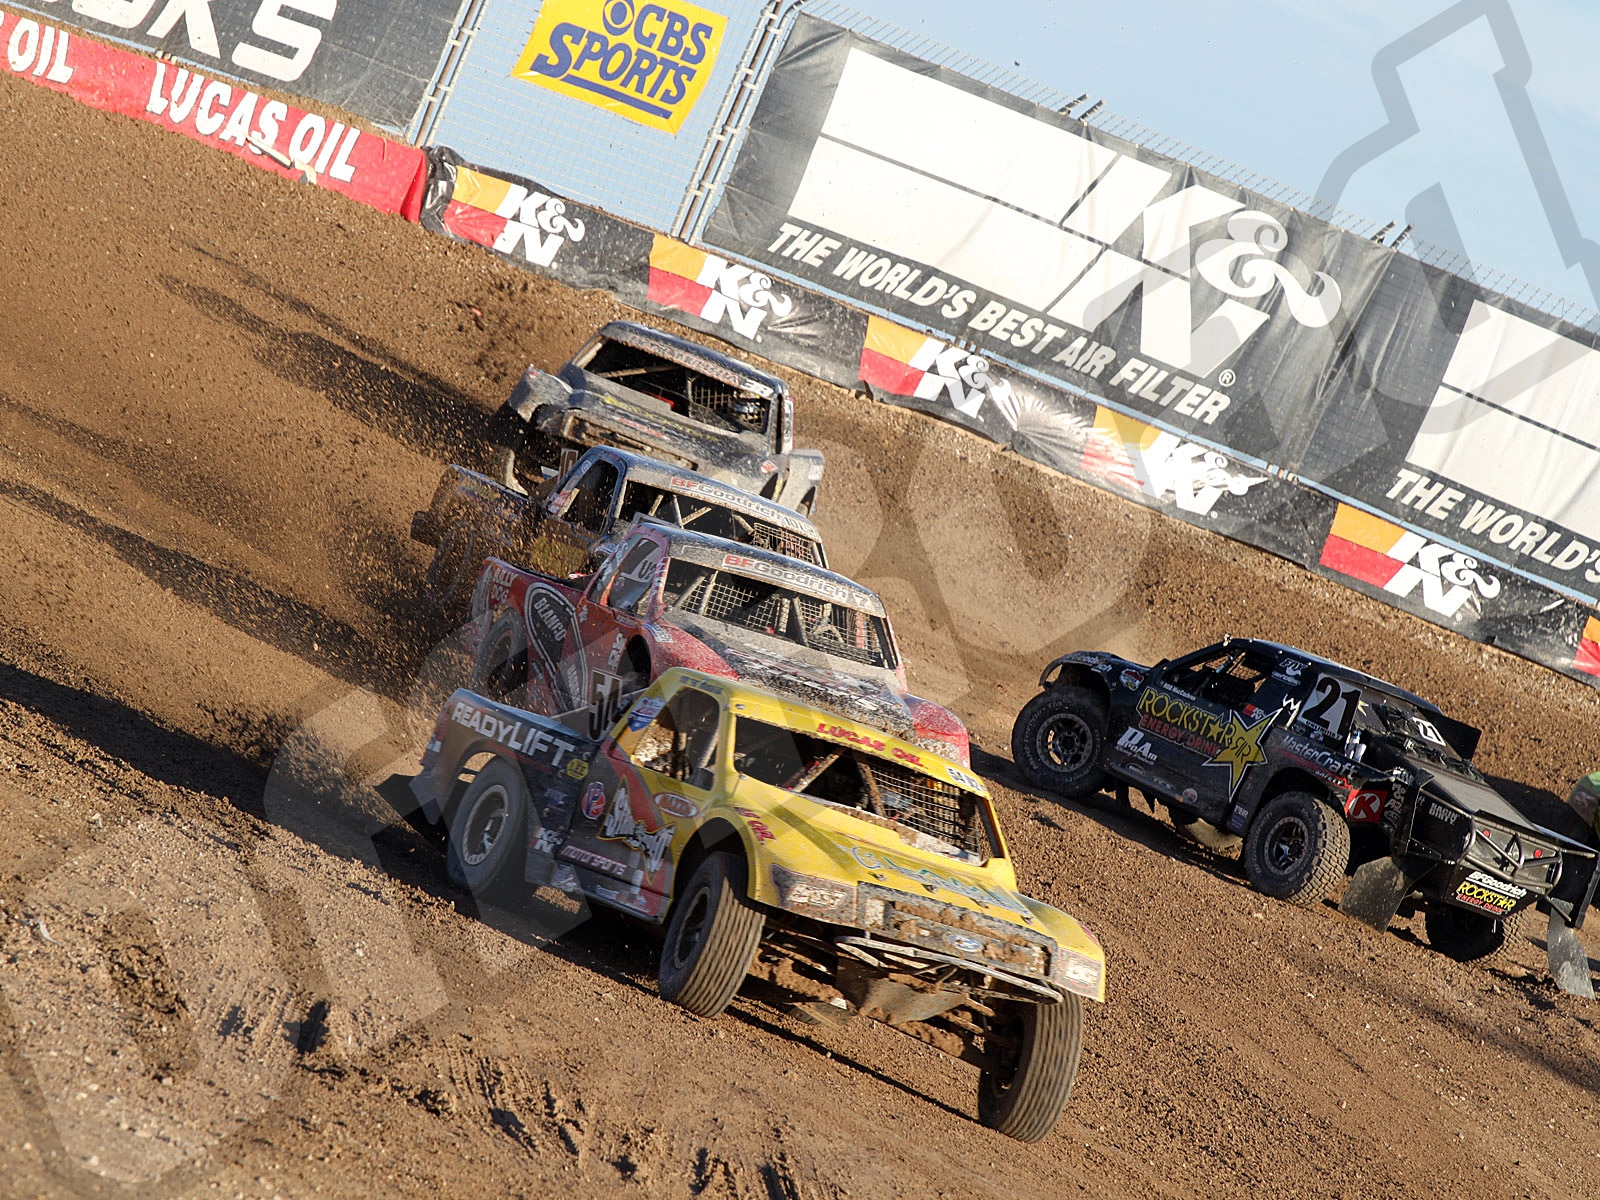 2010 Lucas Oil Off Road Racing Series, Round 13 - Pro 2 Unlimited